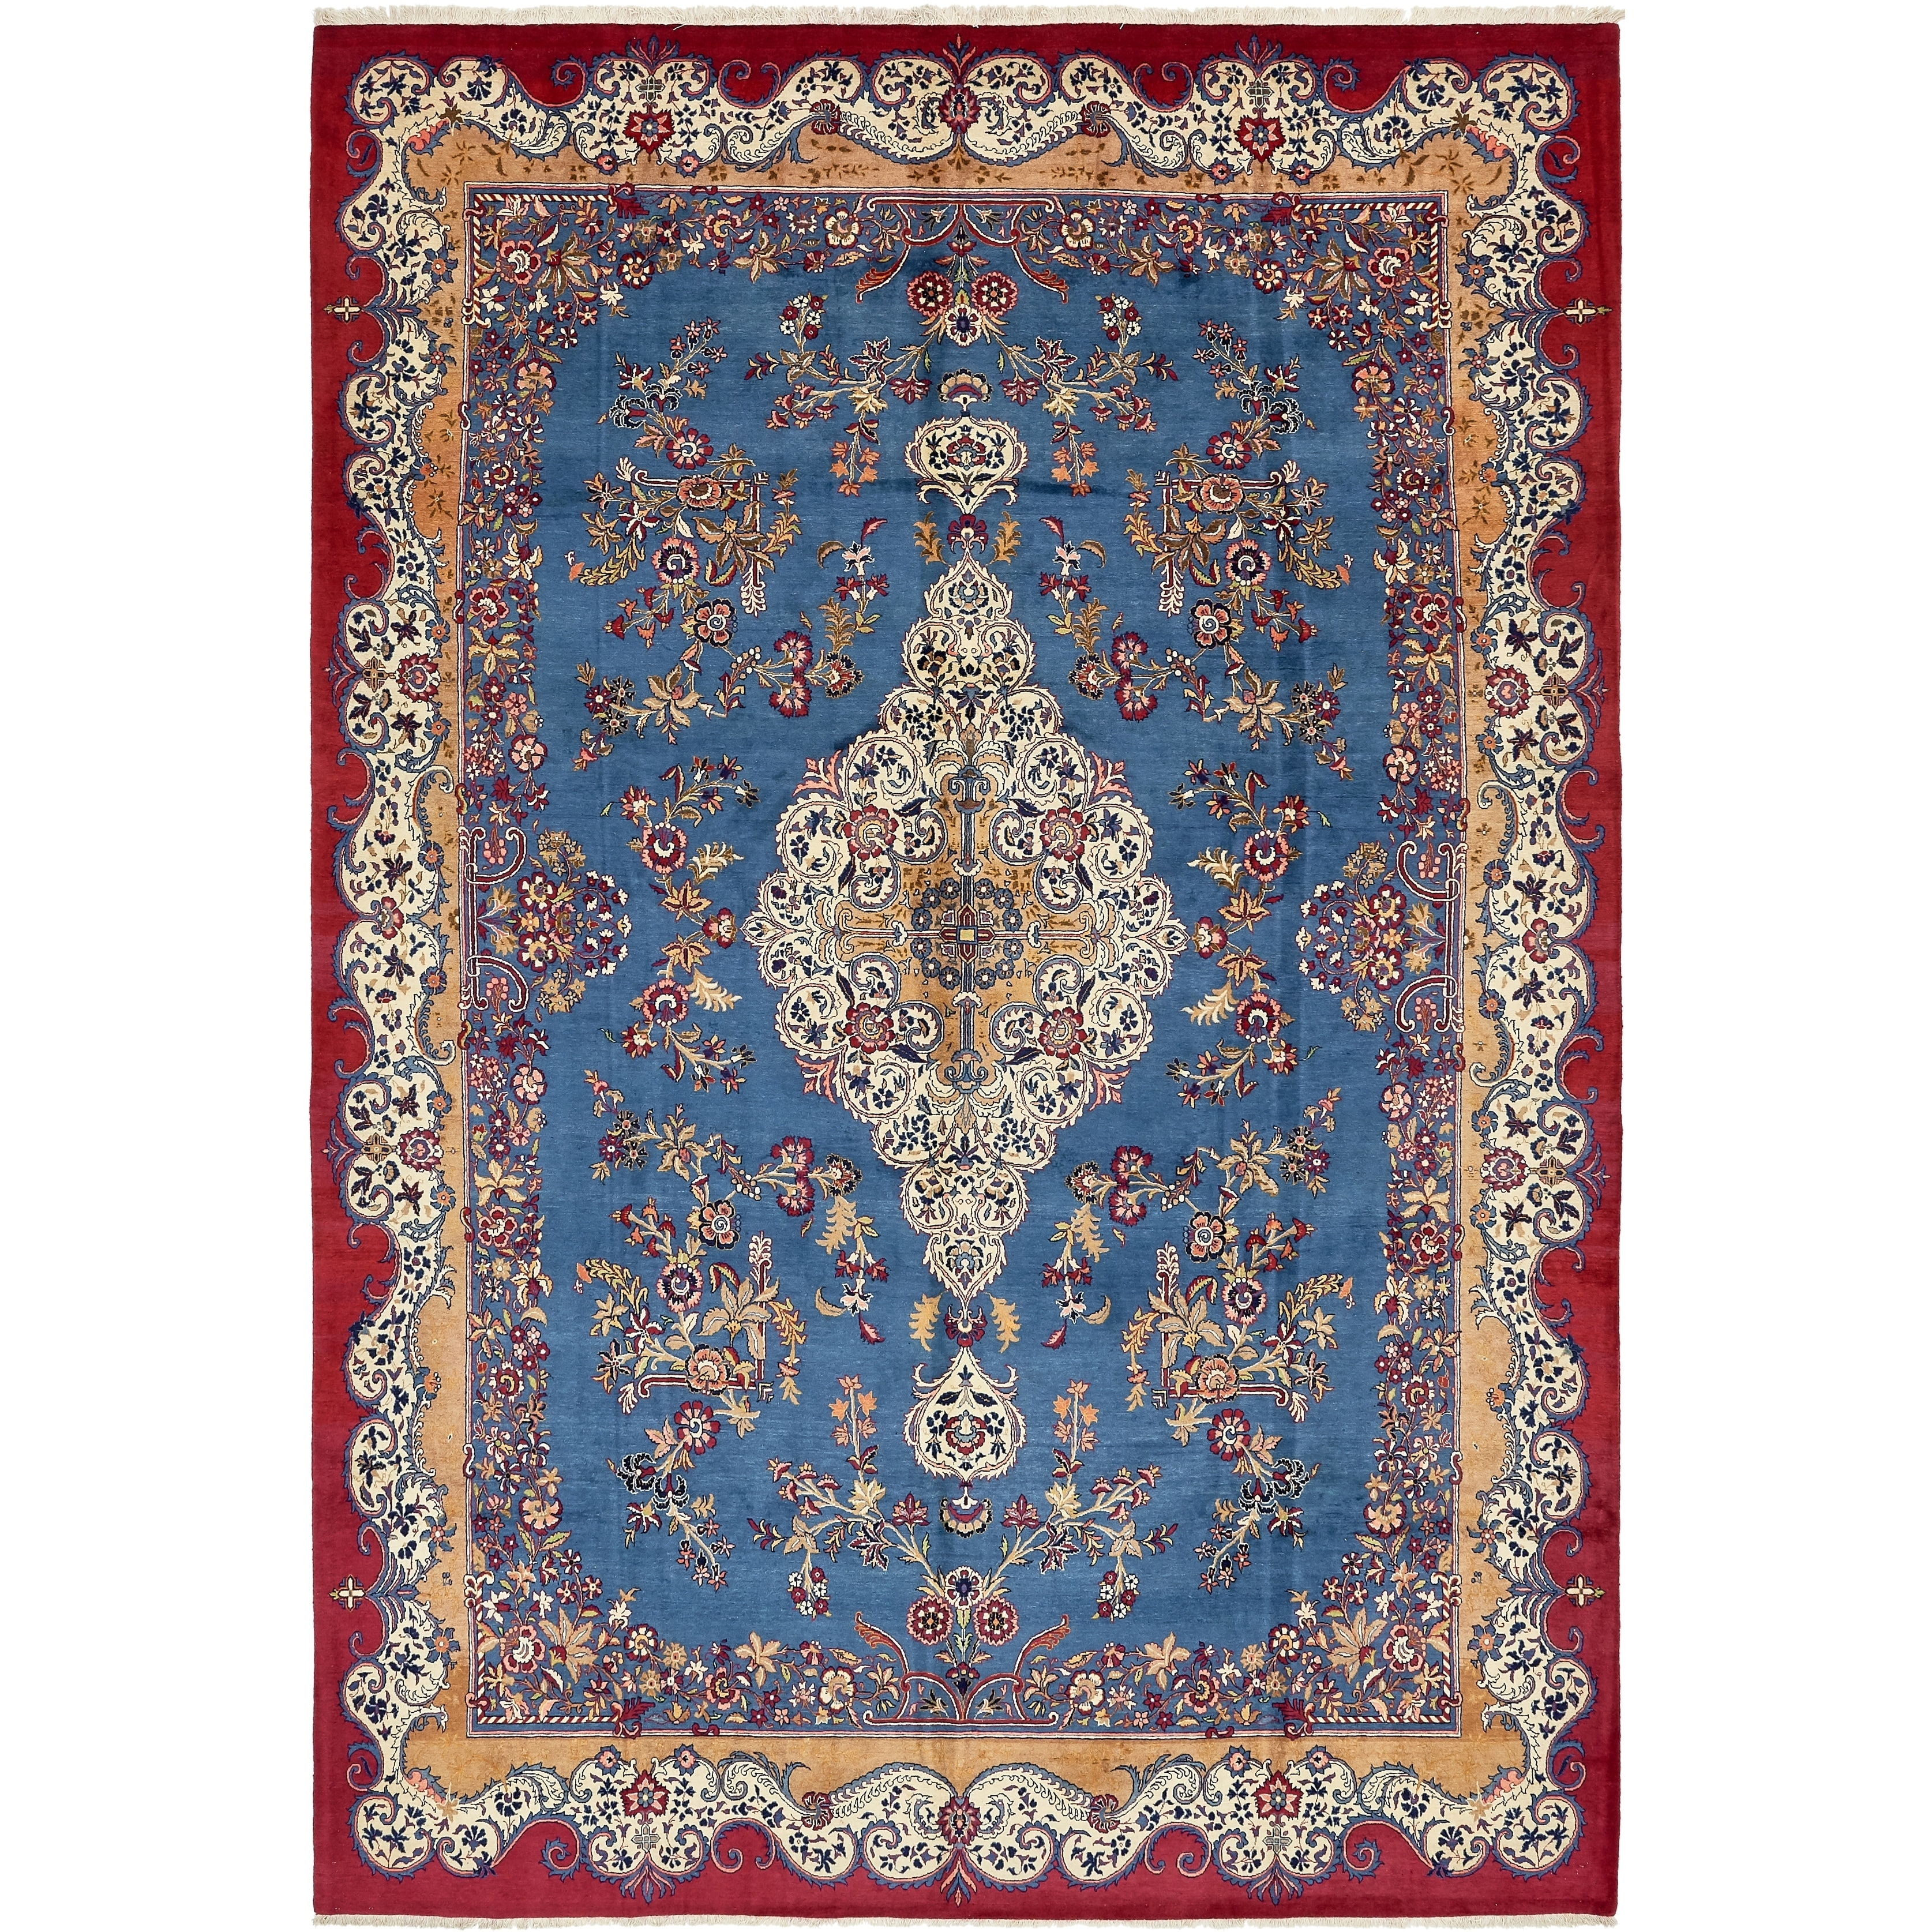 Hand Knotted Kashan Semi Antique Wool Area Rug - 9 x 13 3 (Blue - 9 x 13 3)